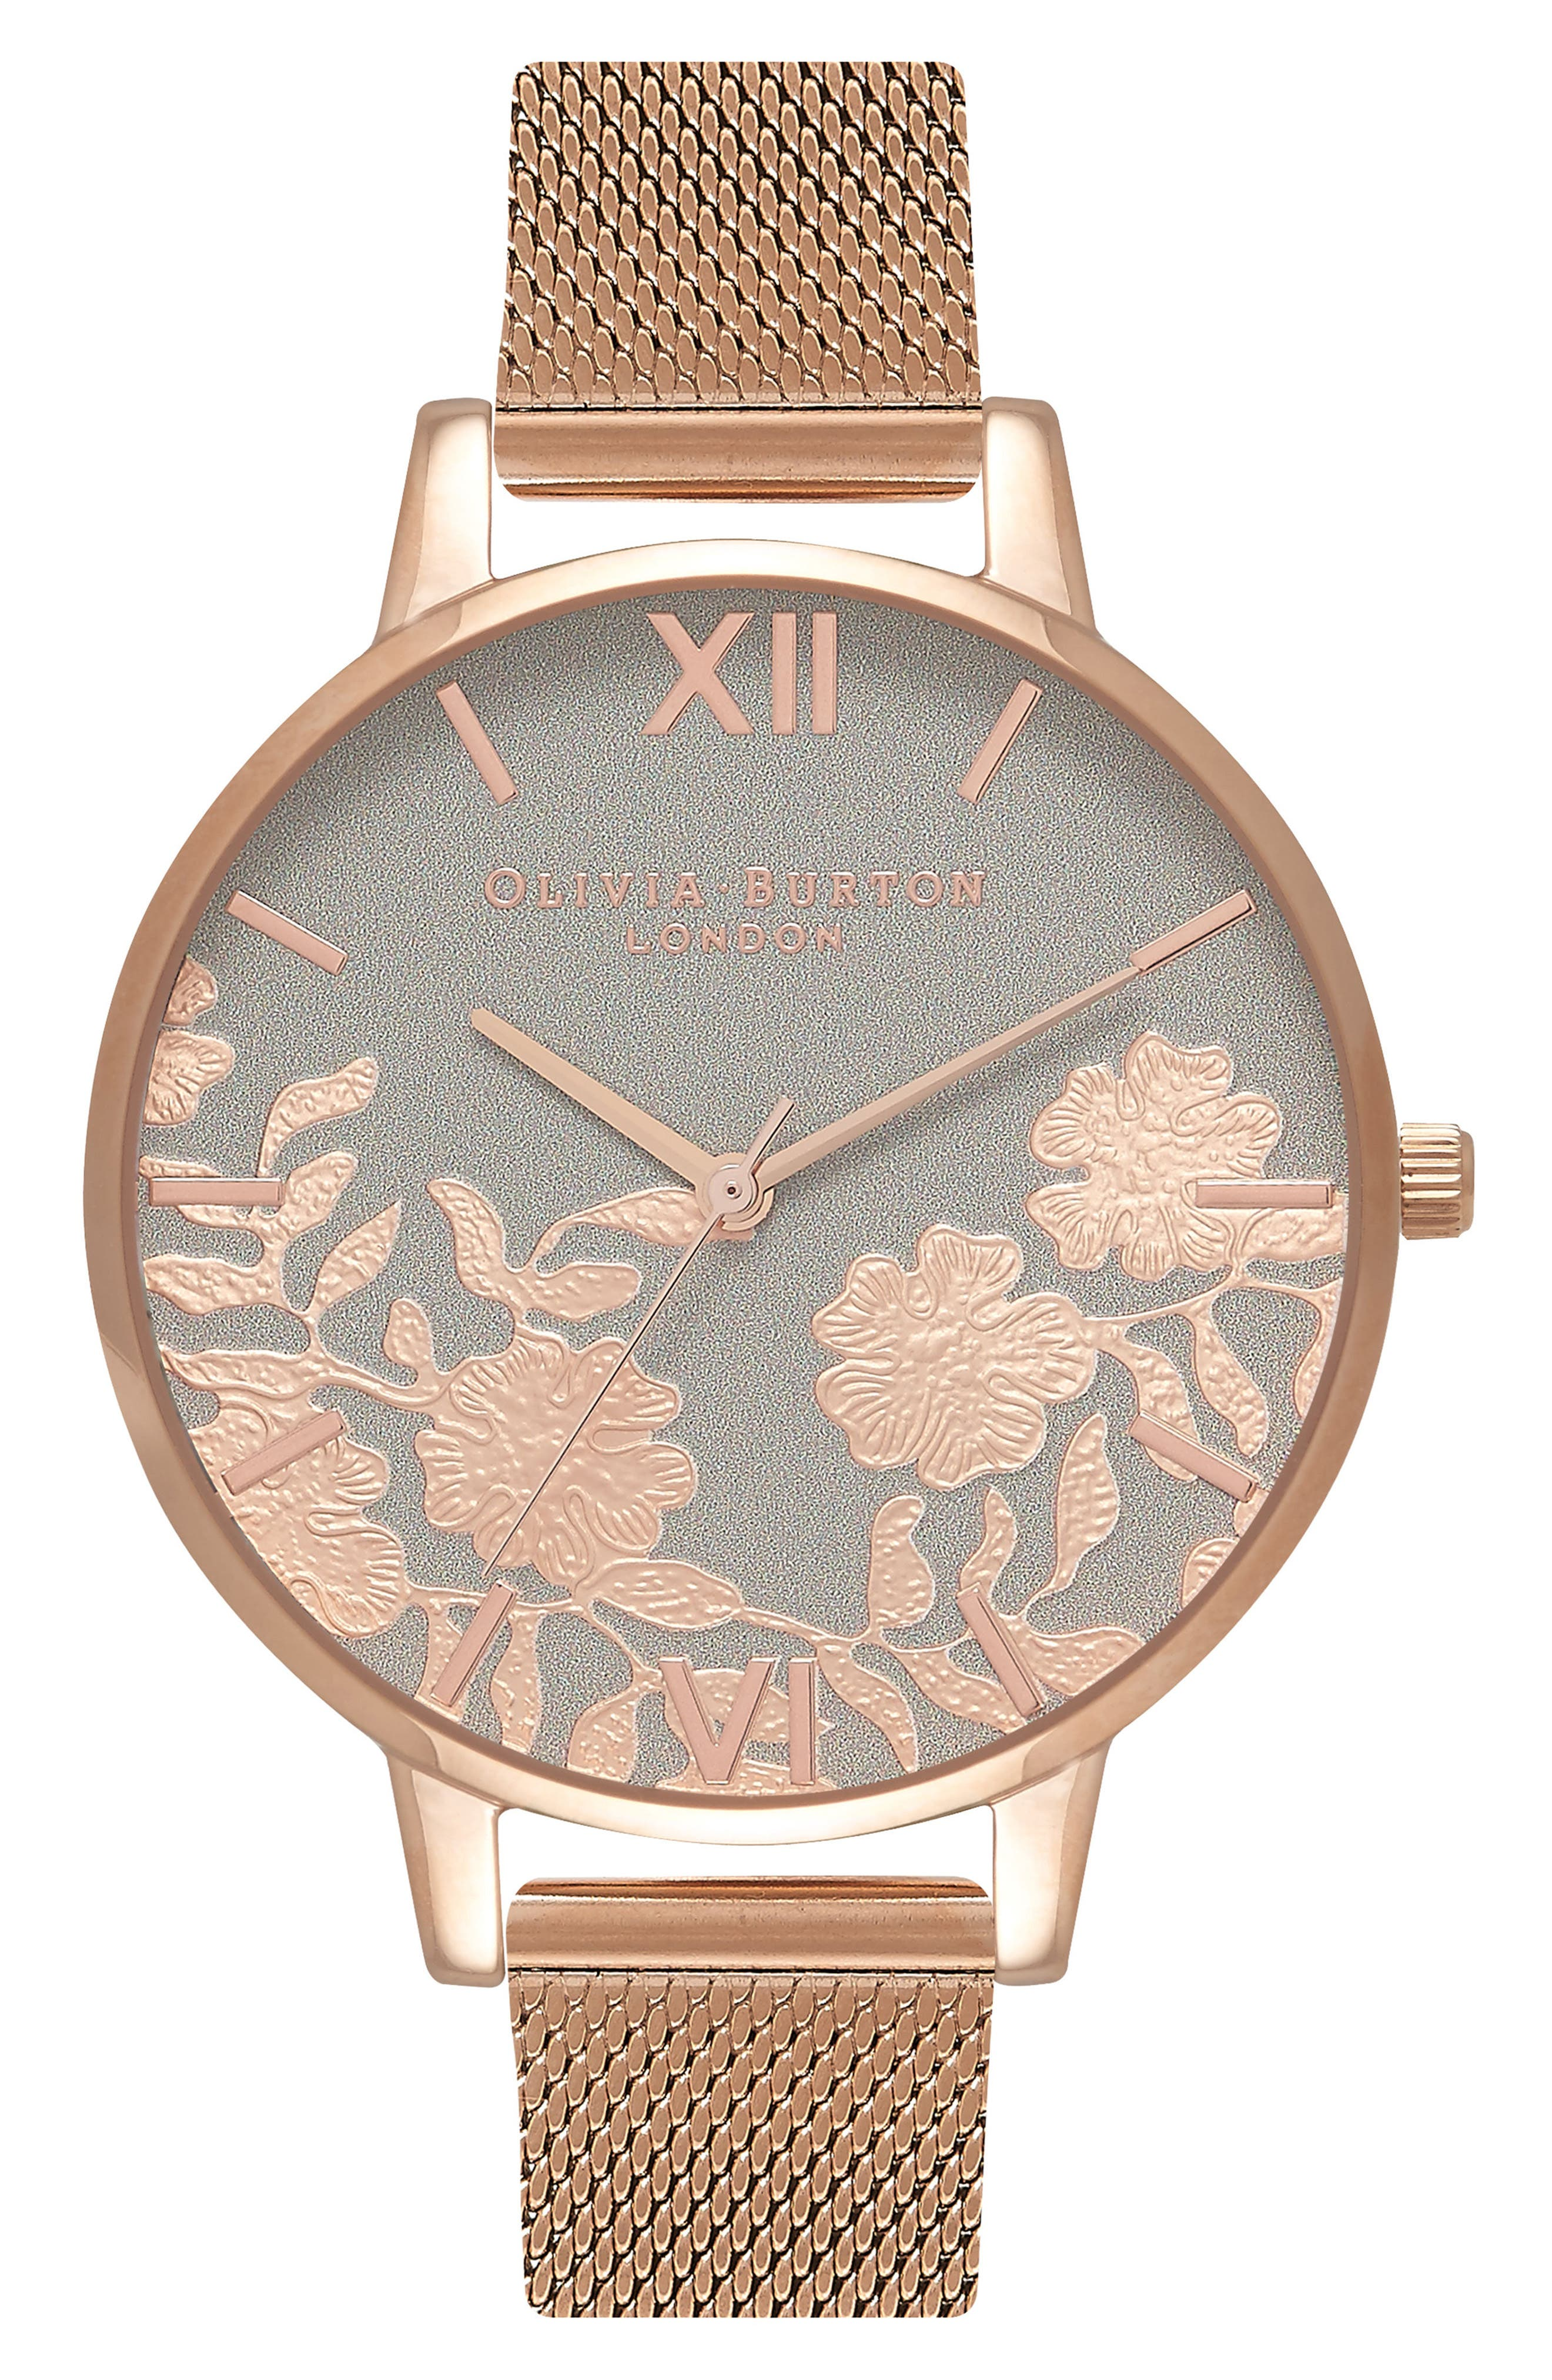 Lace Detail Mesh Strap Watch, 38mm,                             Main thumbnail 1, color,                             Rose Gold/ Grey/ Rose Gold